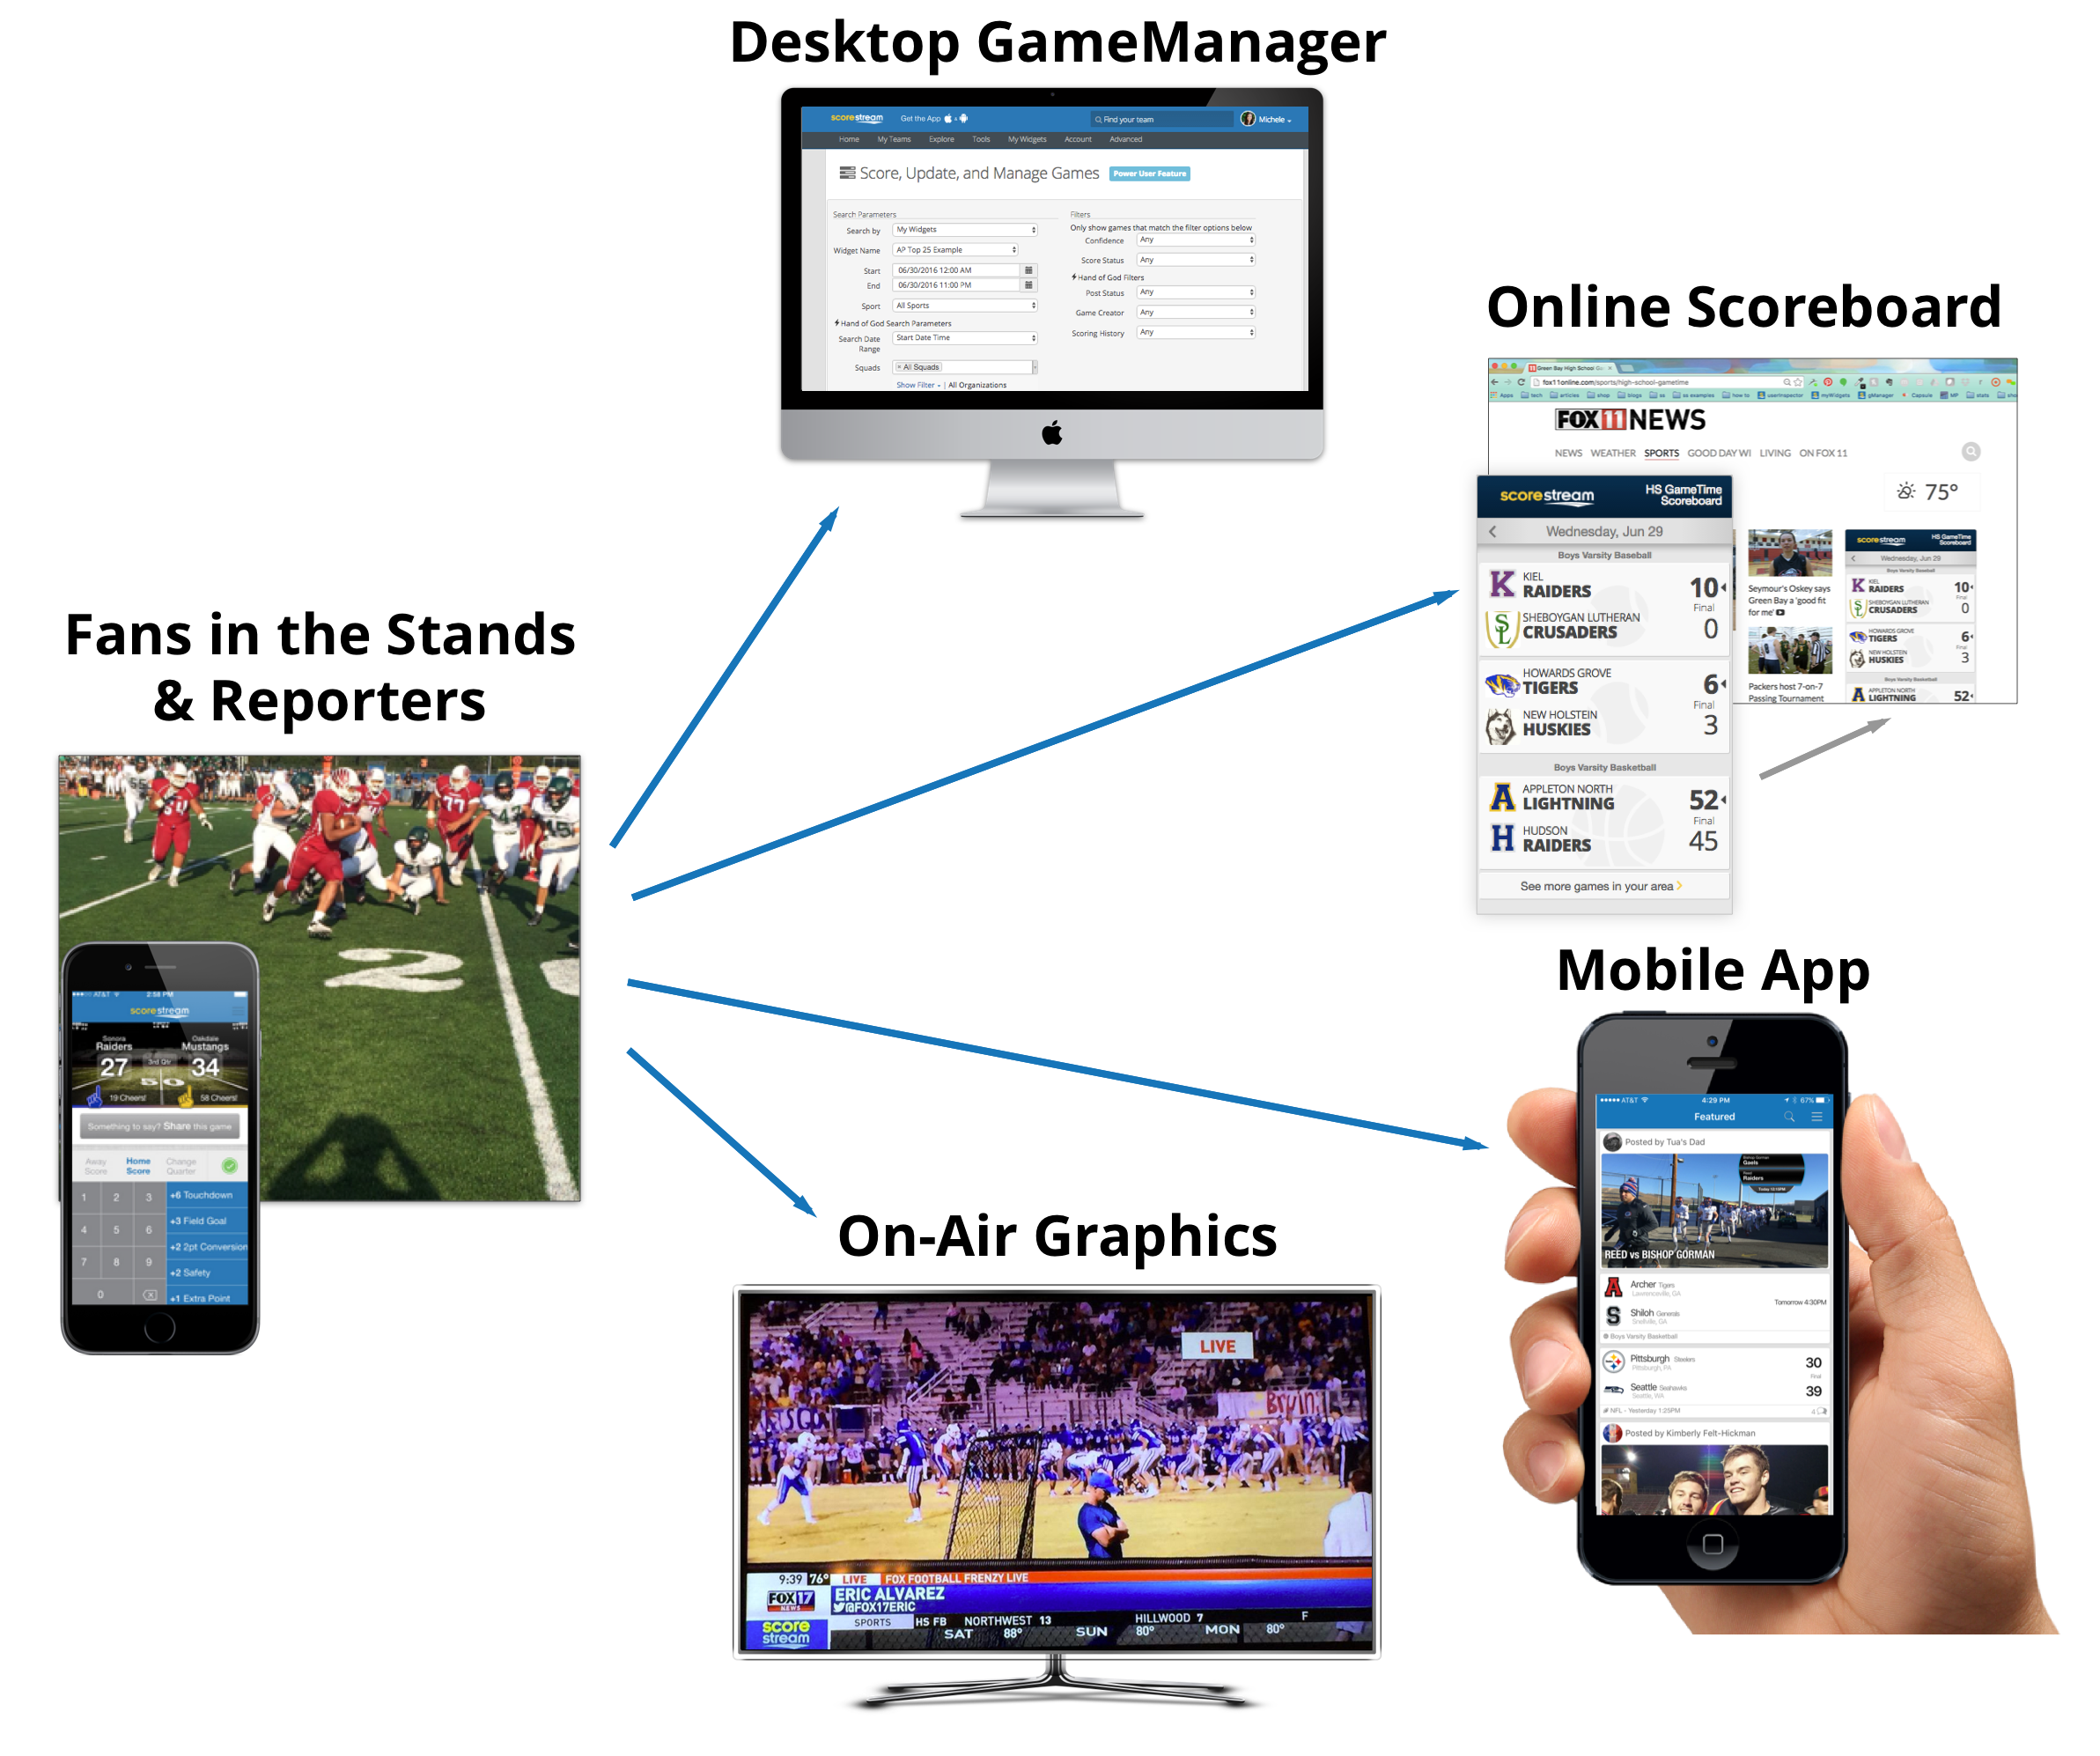 ScoreStream Sports Syndication Diagram